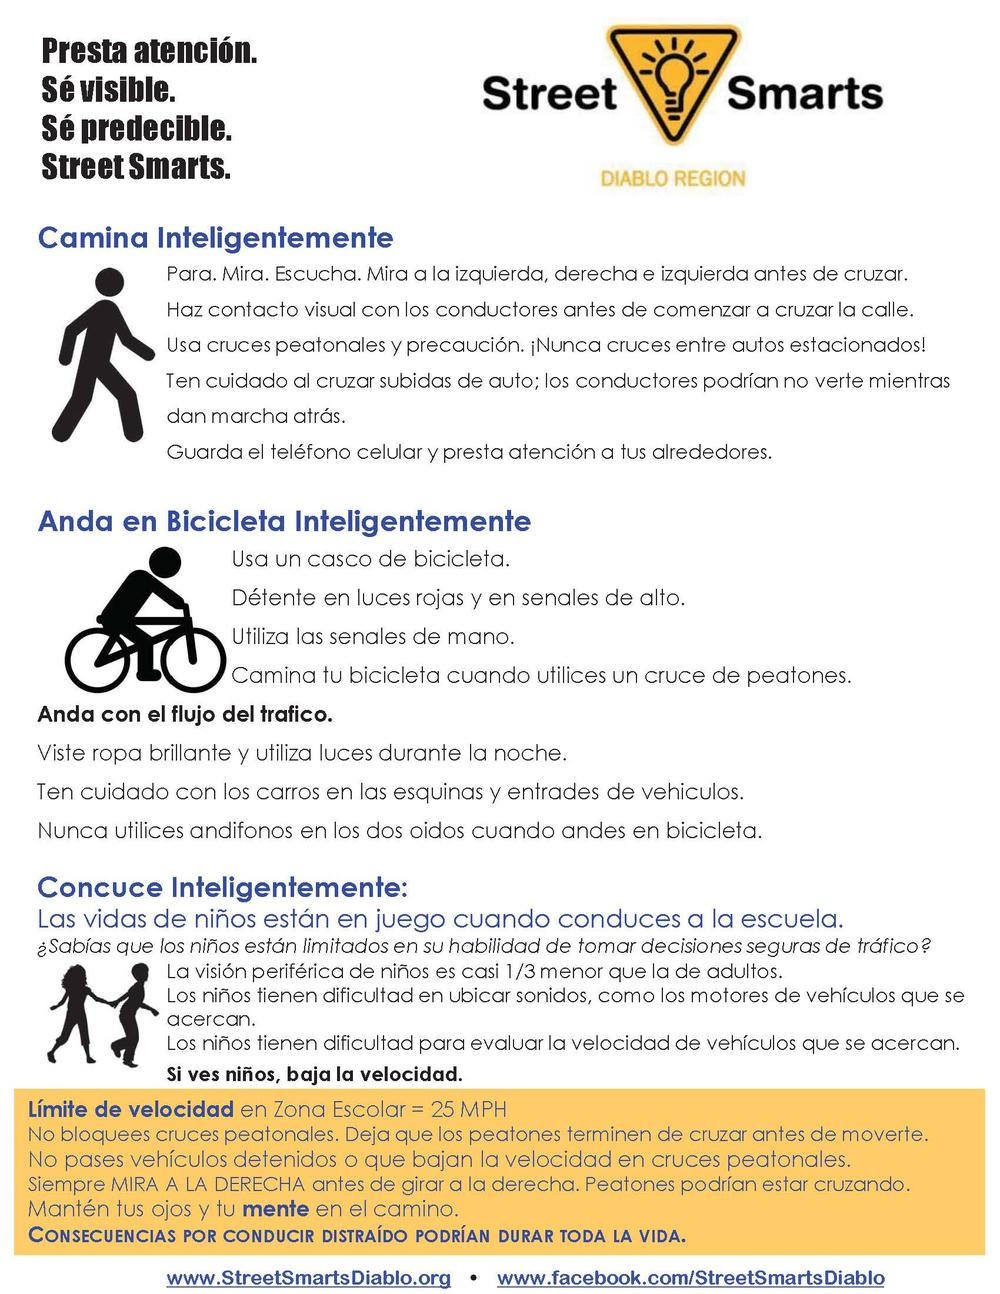 Street Smarts guidelines in Spanish